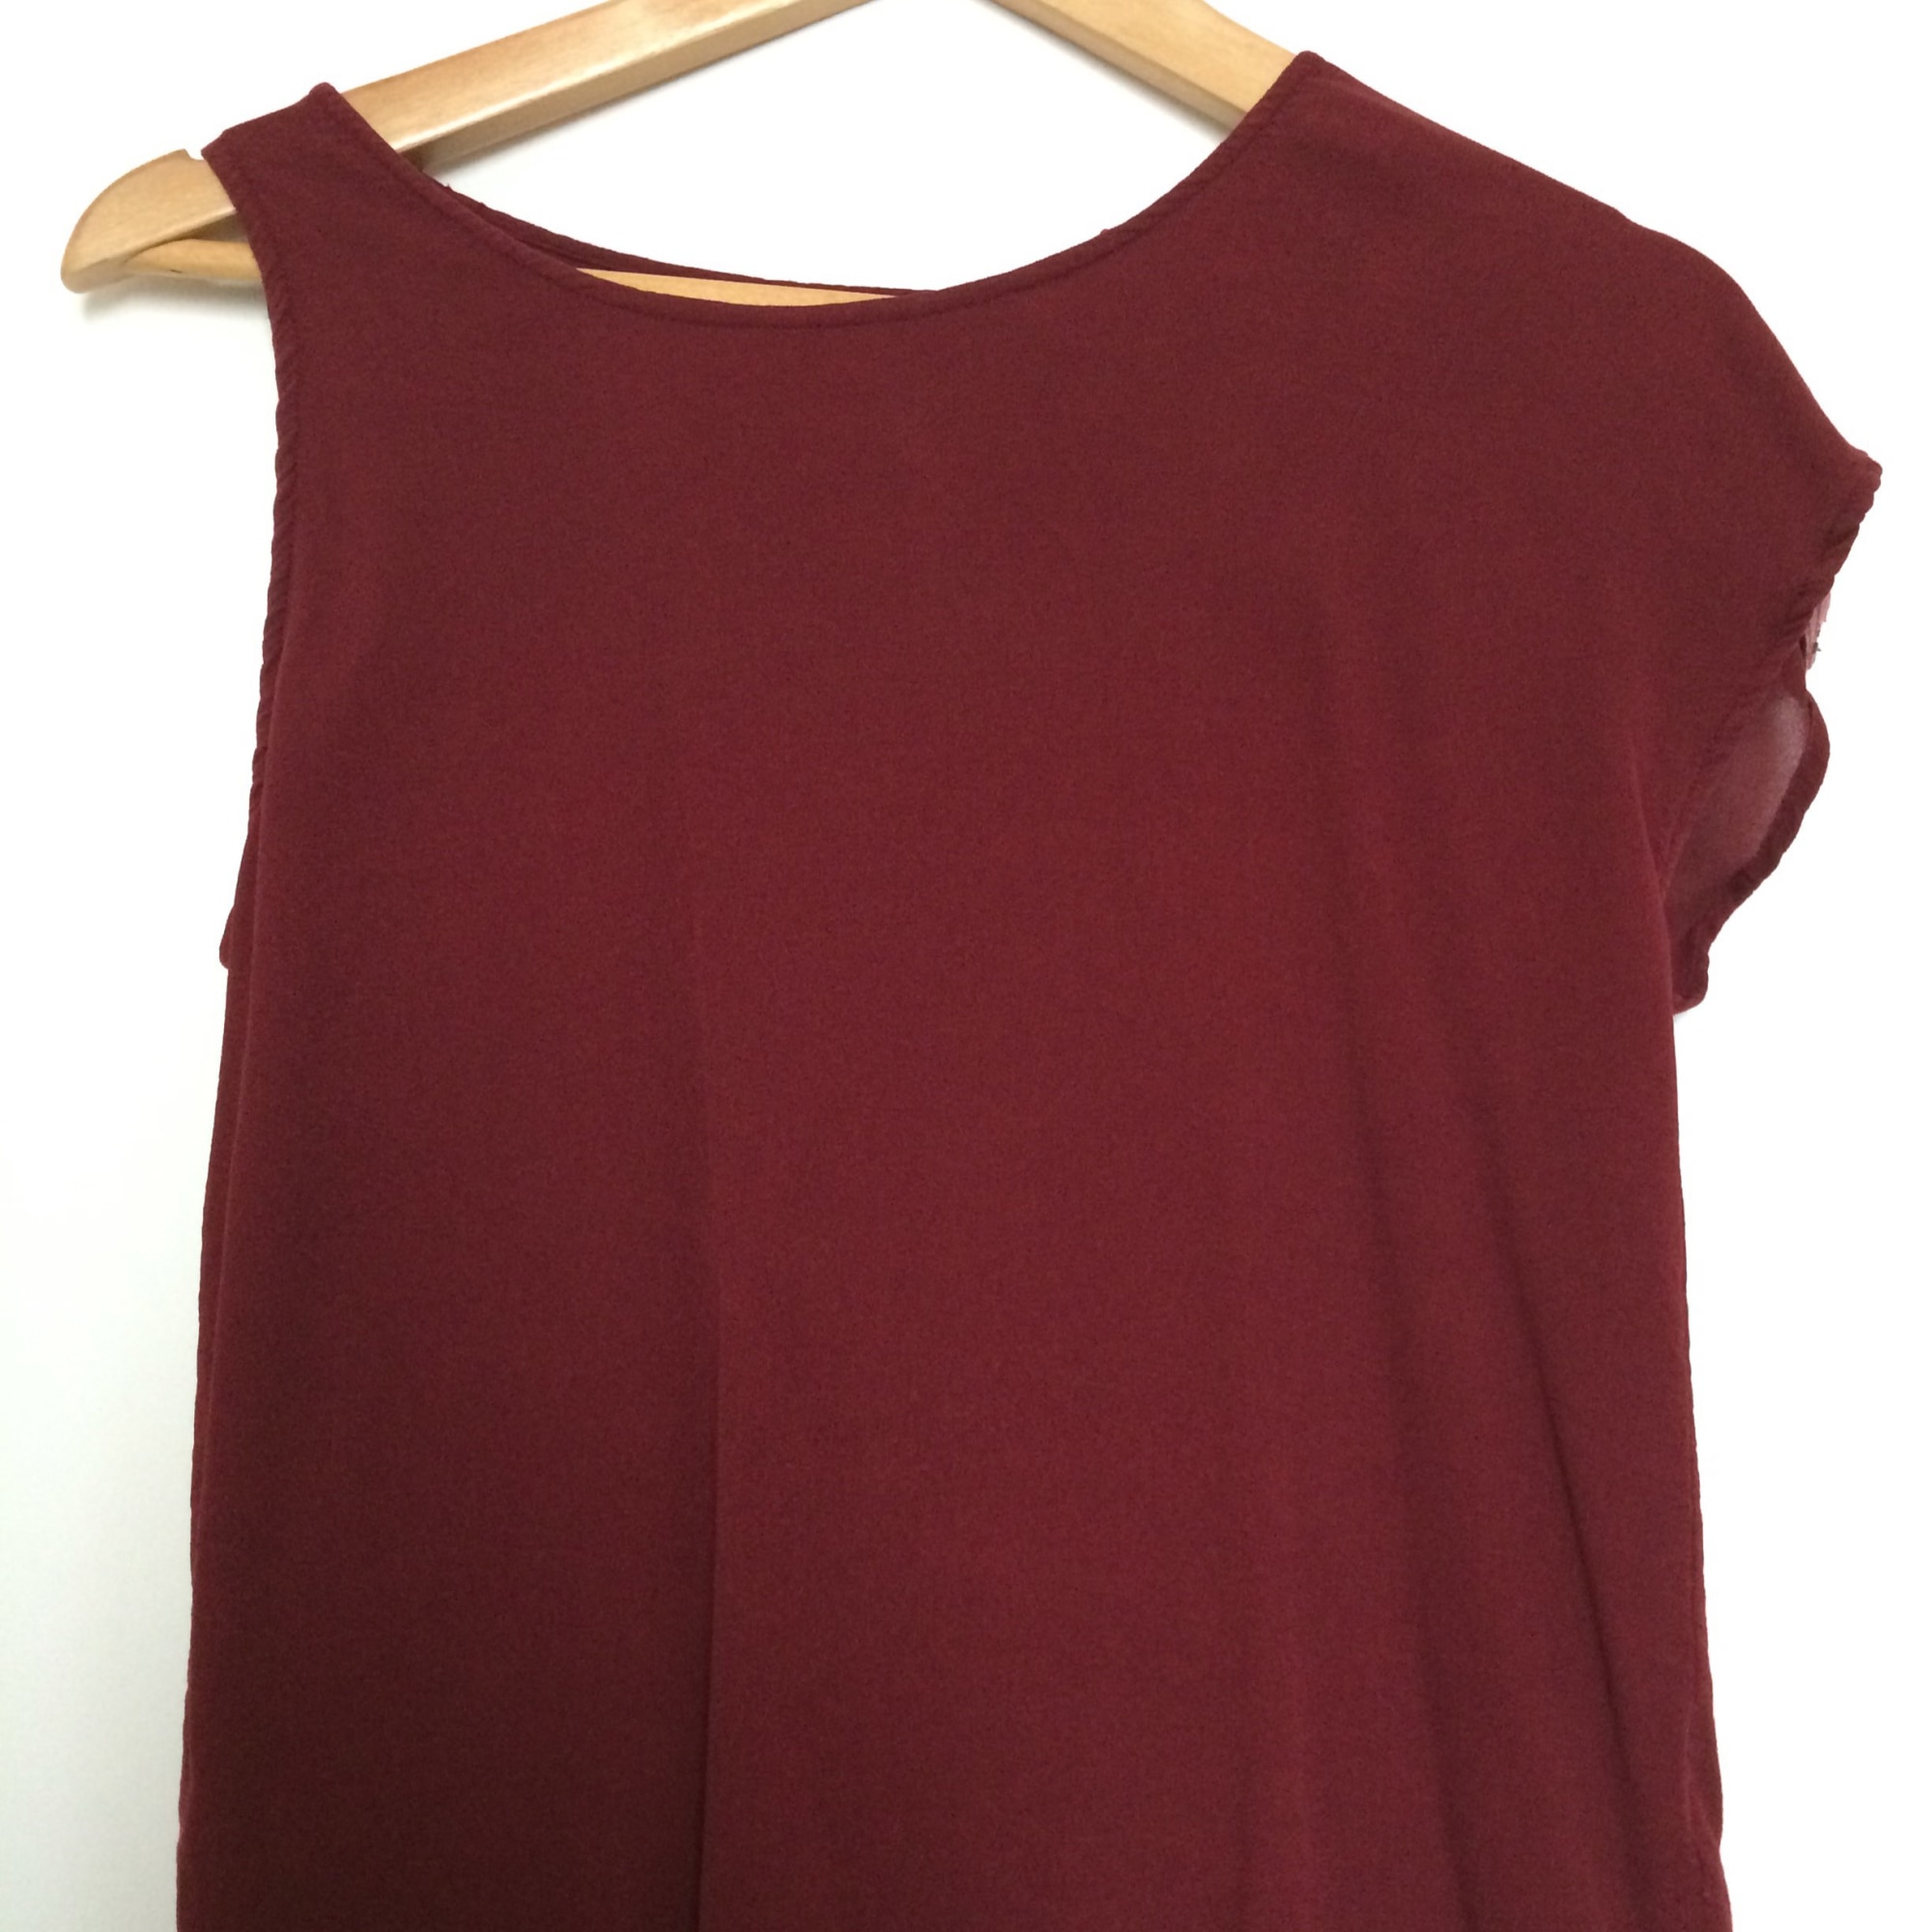 Top, tee-shirt ELEVEN PARIS Rouge, bordeaux